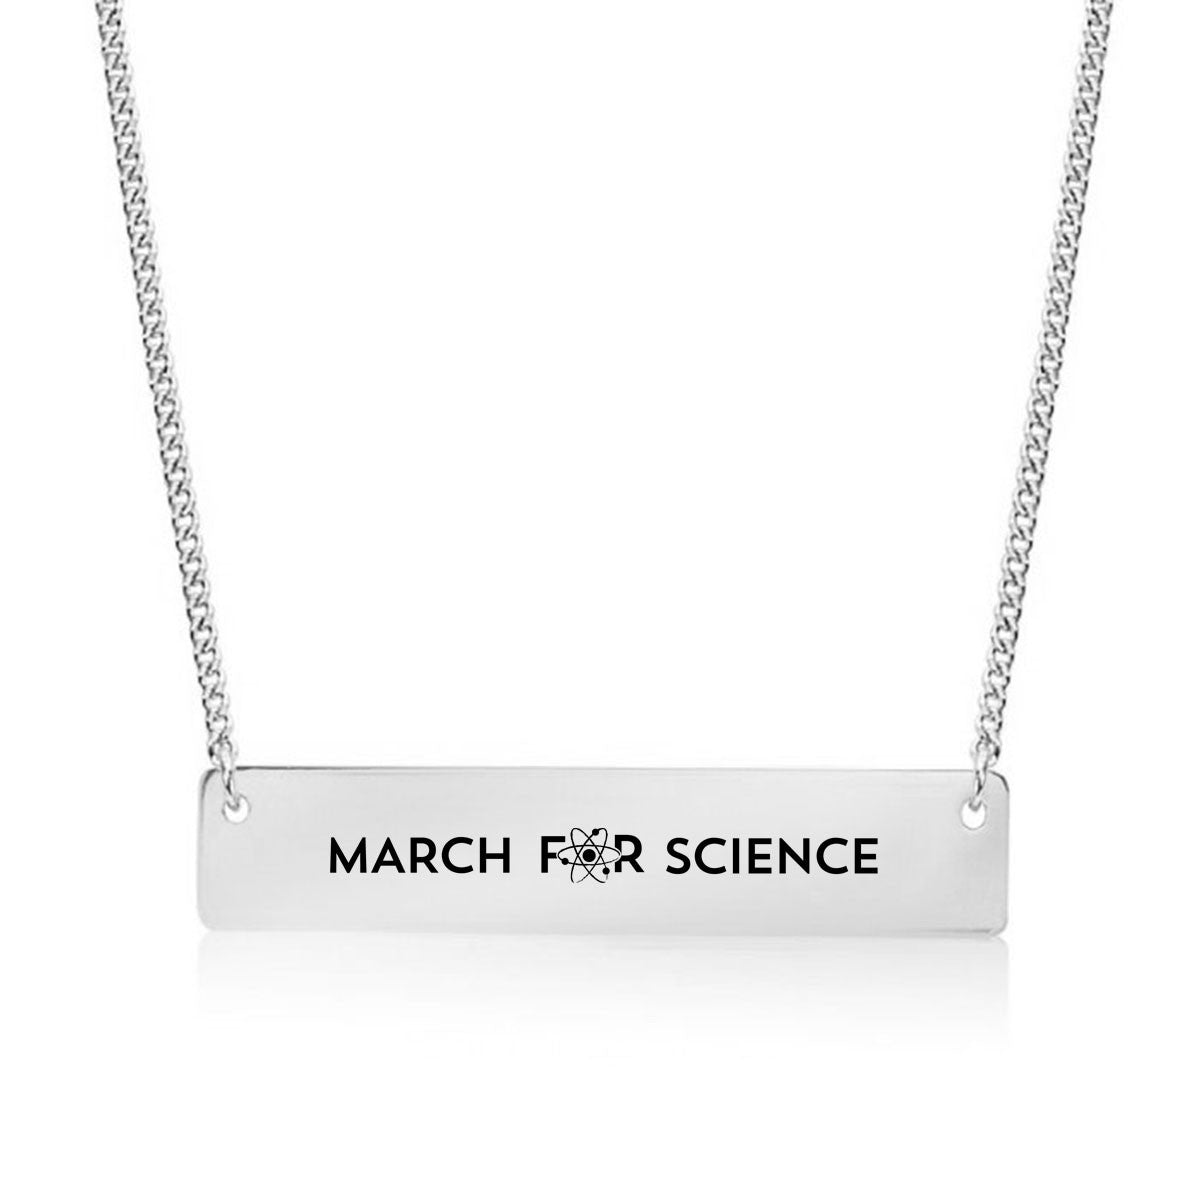 March for Science Gold / Silver Bar Necklace - pipercleo.com